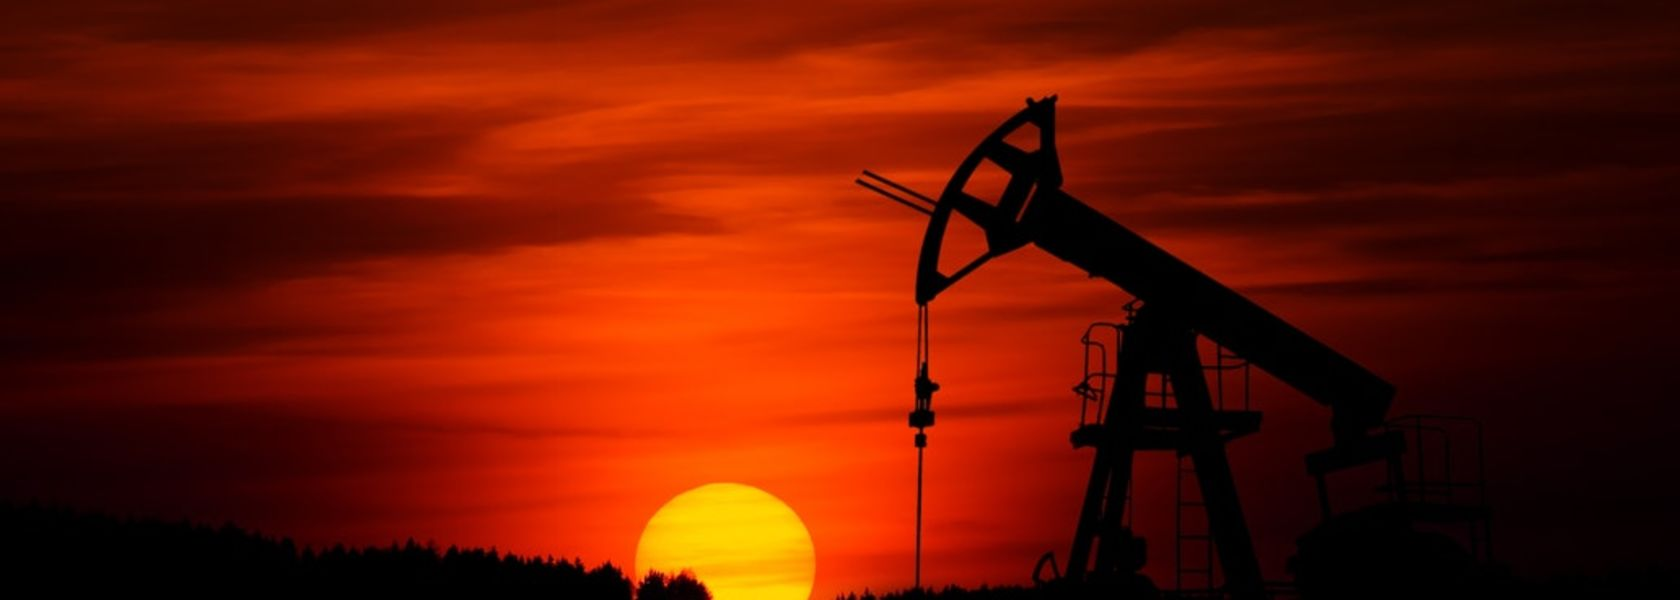 Historic shale player EOG Resources cuts output